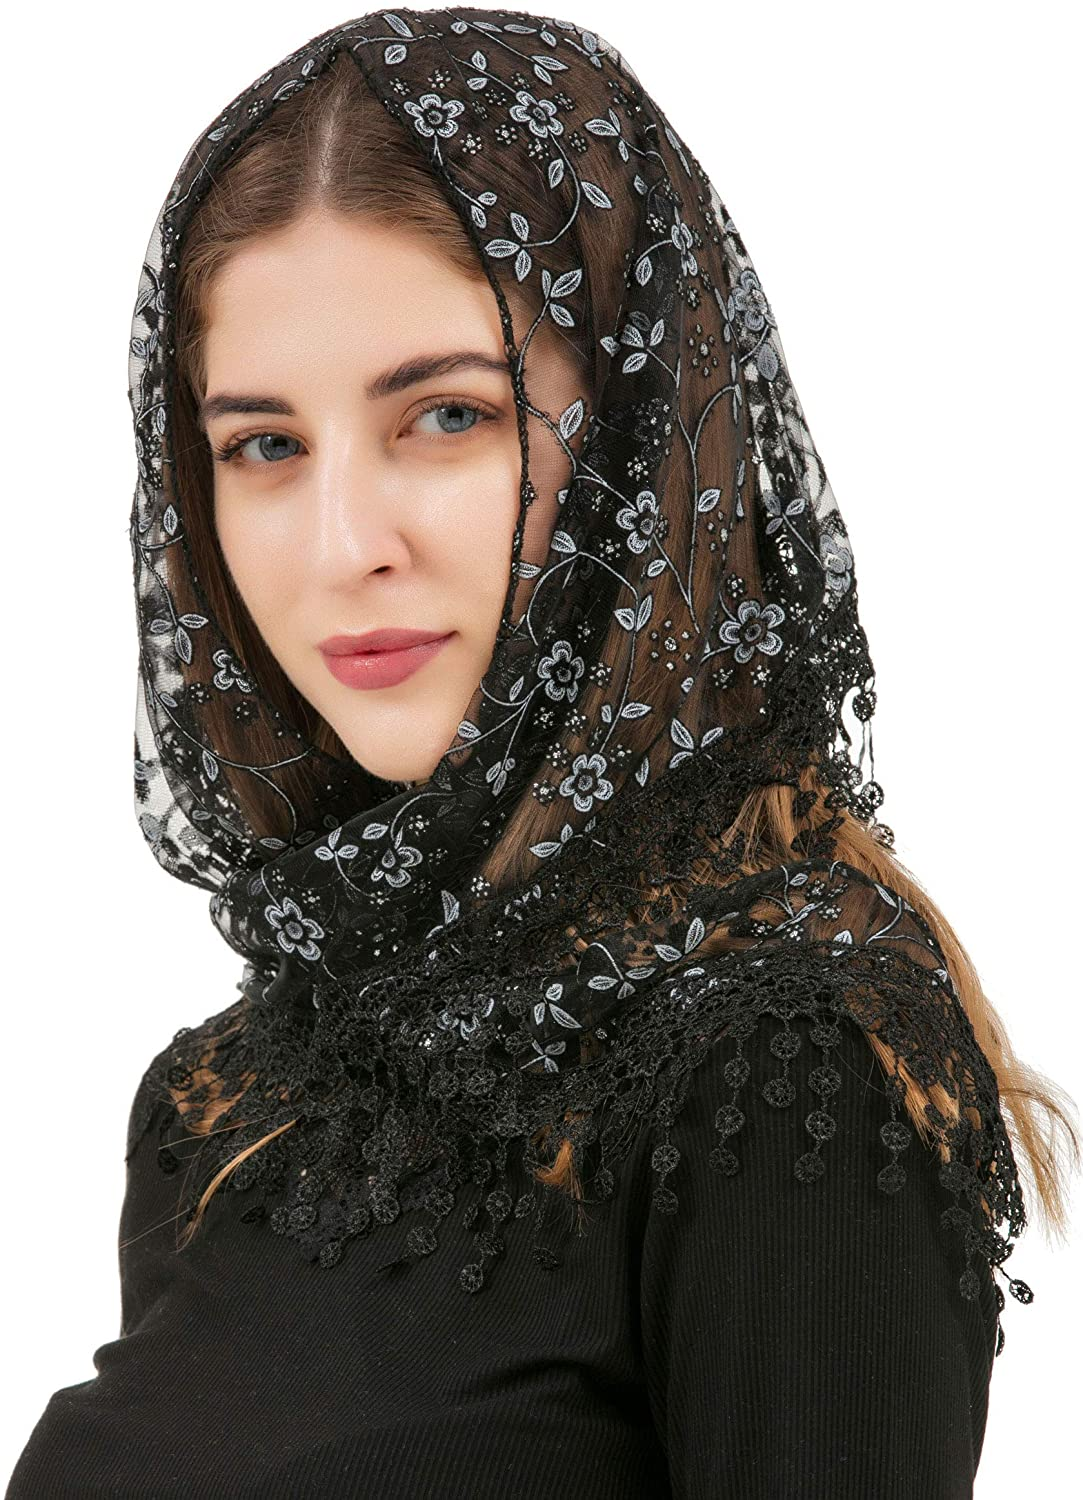 Pamor Triangle Lace Veil Mantilla Cathedral Head Covering Chapel Veil for Mass Wedding Bridesmaids